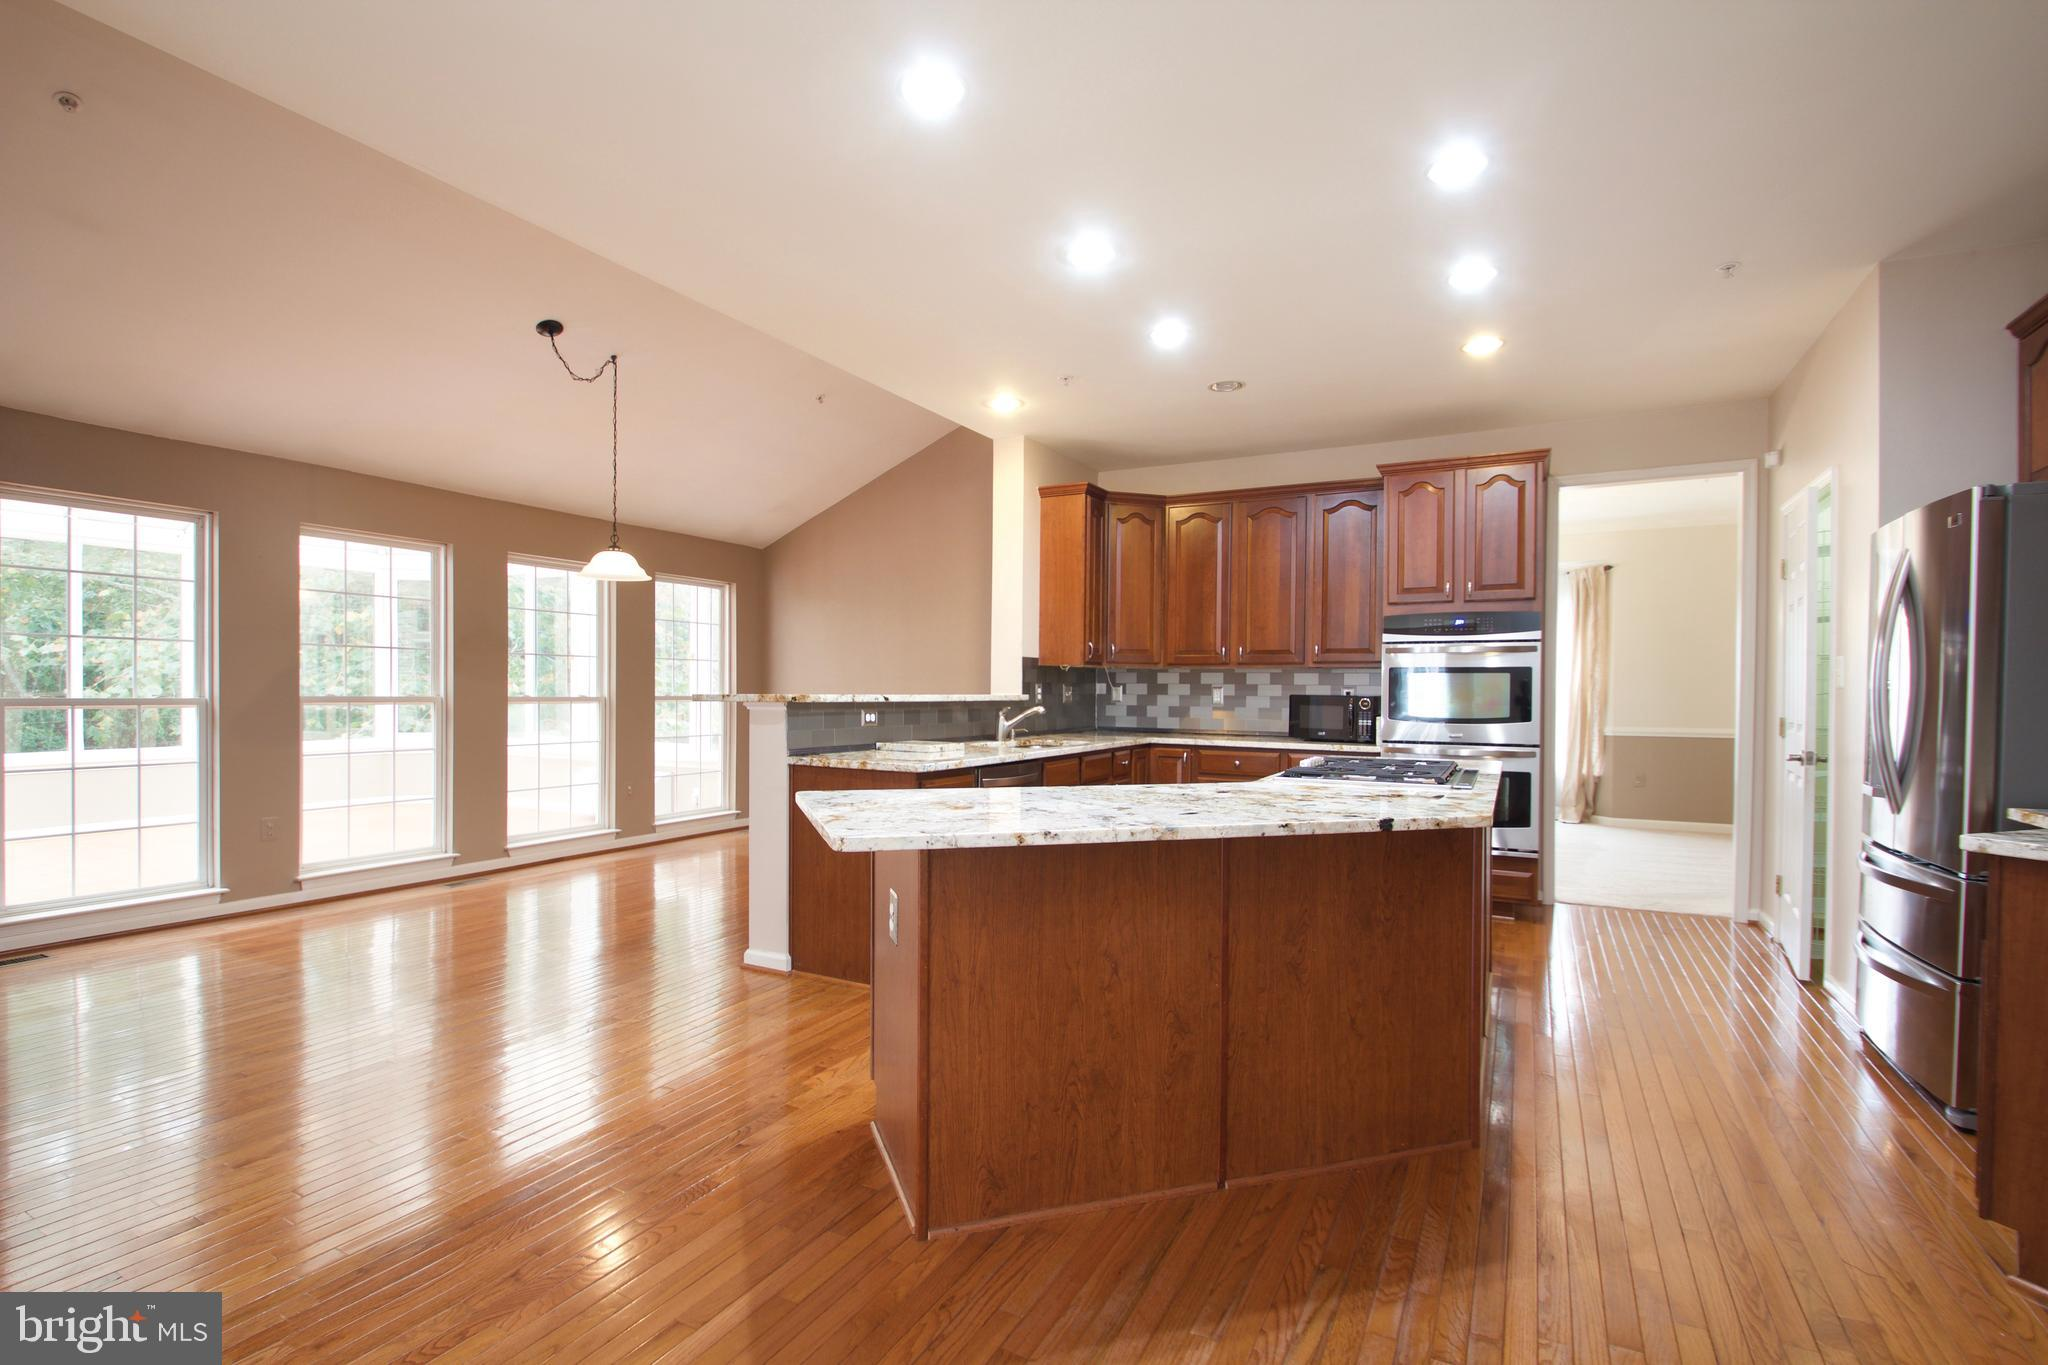 4905 DAISEY CREEK TERRACE, BELTSVILLE, MD 20705